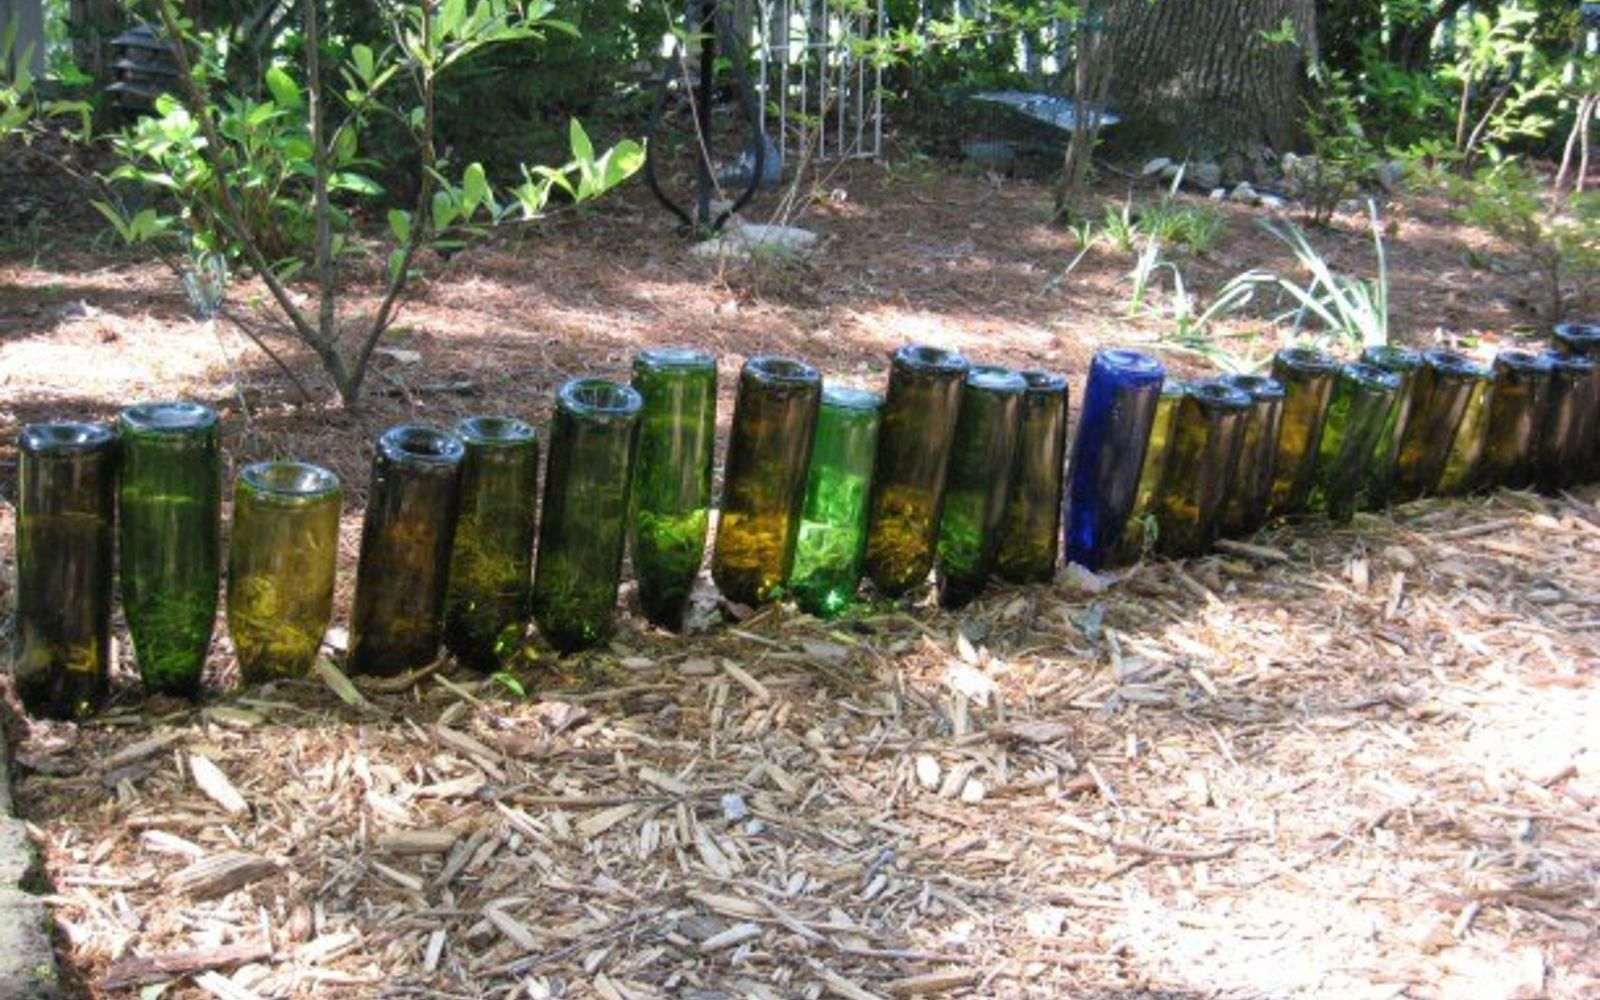 s 15 incredible backyard ideas using empty wine bottles, gardening, outdoor living, repurposing upcycling, Flip bottles and plant them along your garden